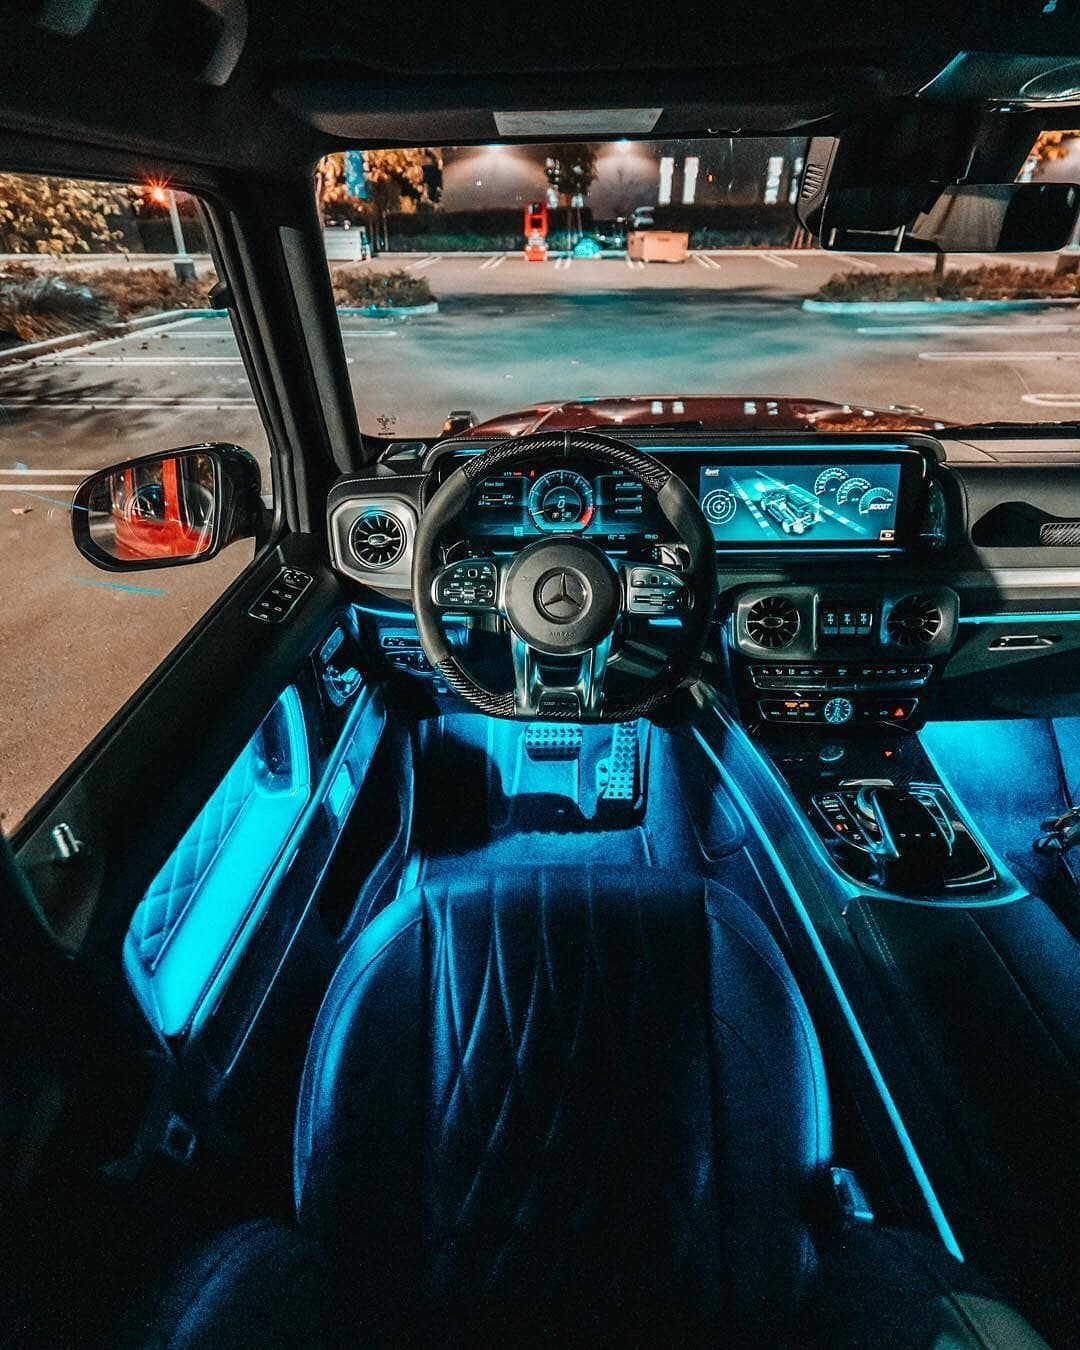 The Most Luxury Cars In The World With Best Photos Of Cars Luxury Car Interior Luxury Cars Mercedes G63